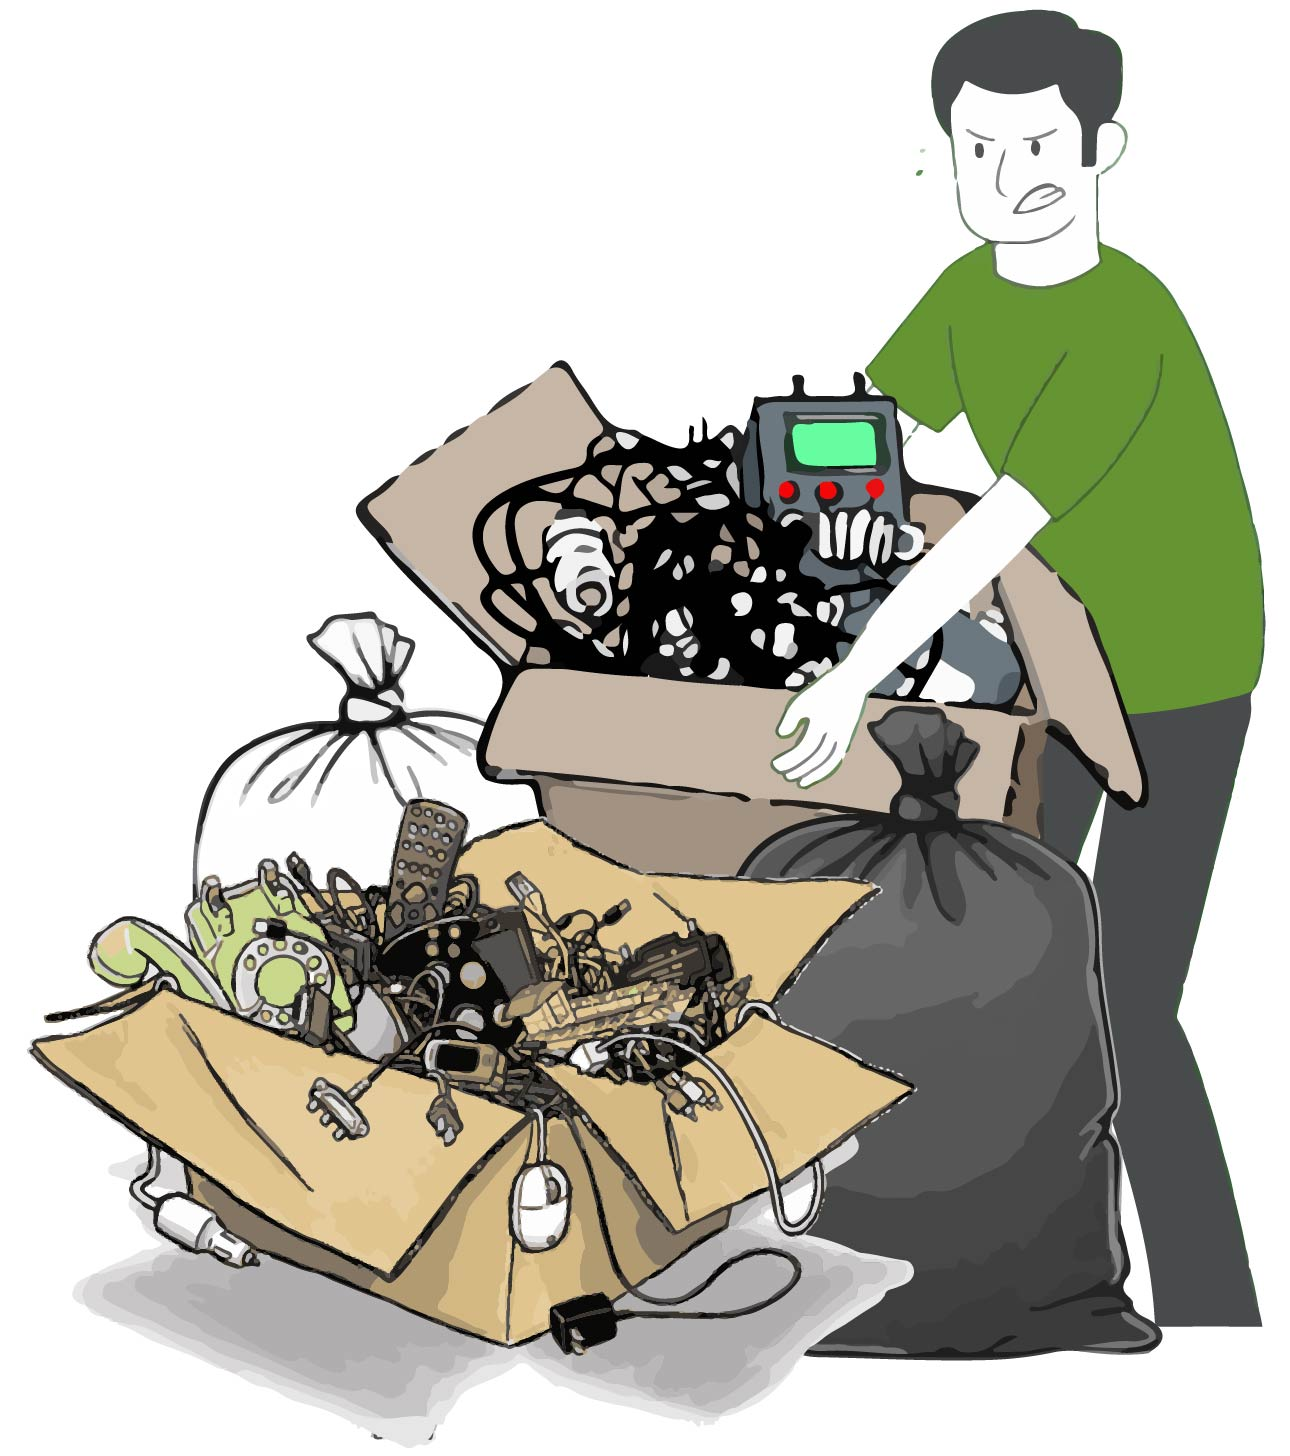 Affordable Junk Removal Services in Blair, NE